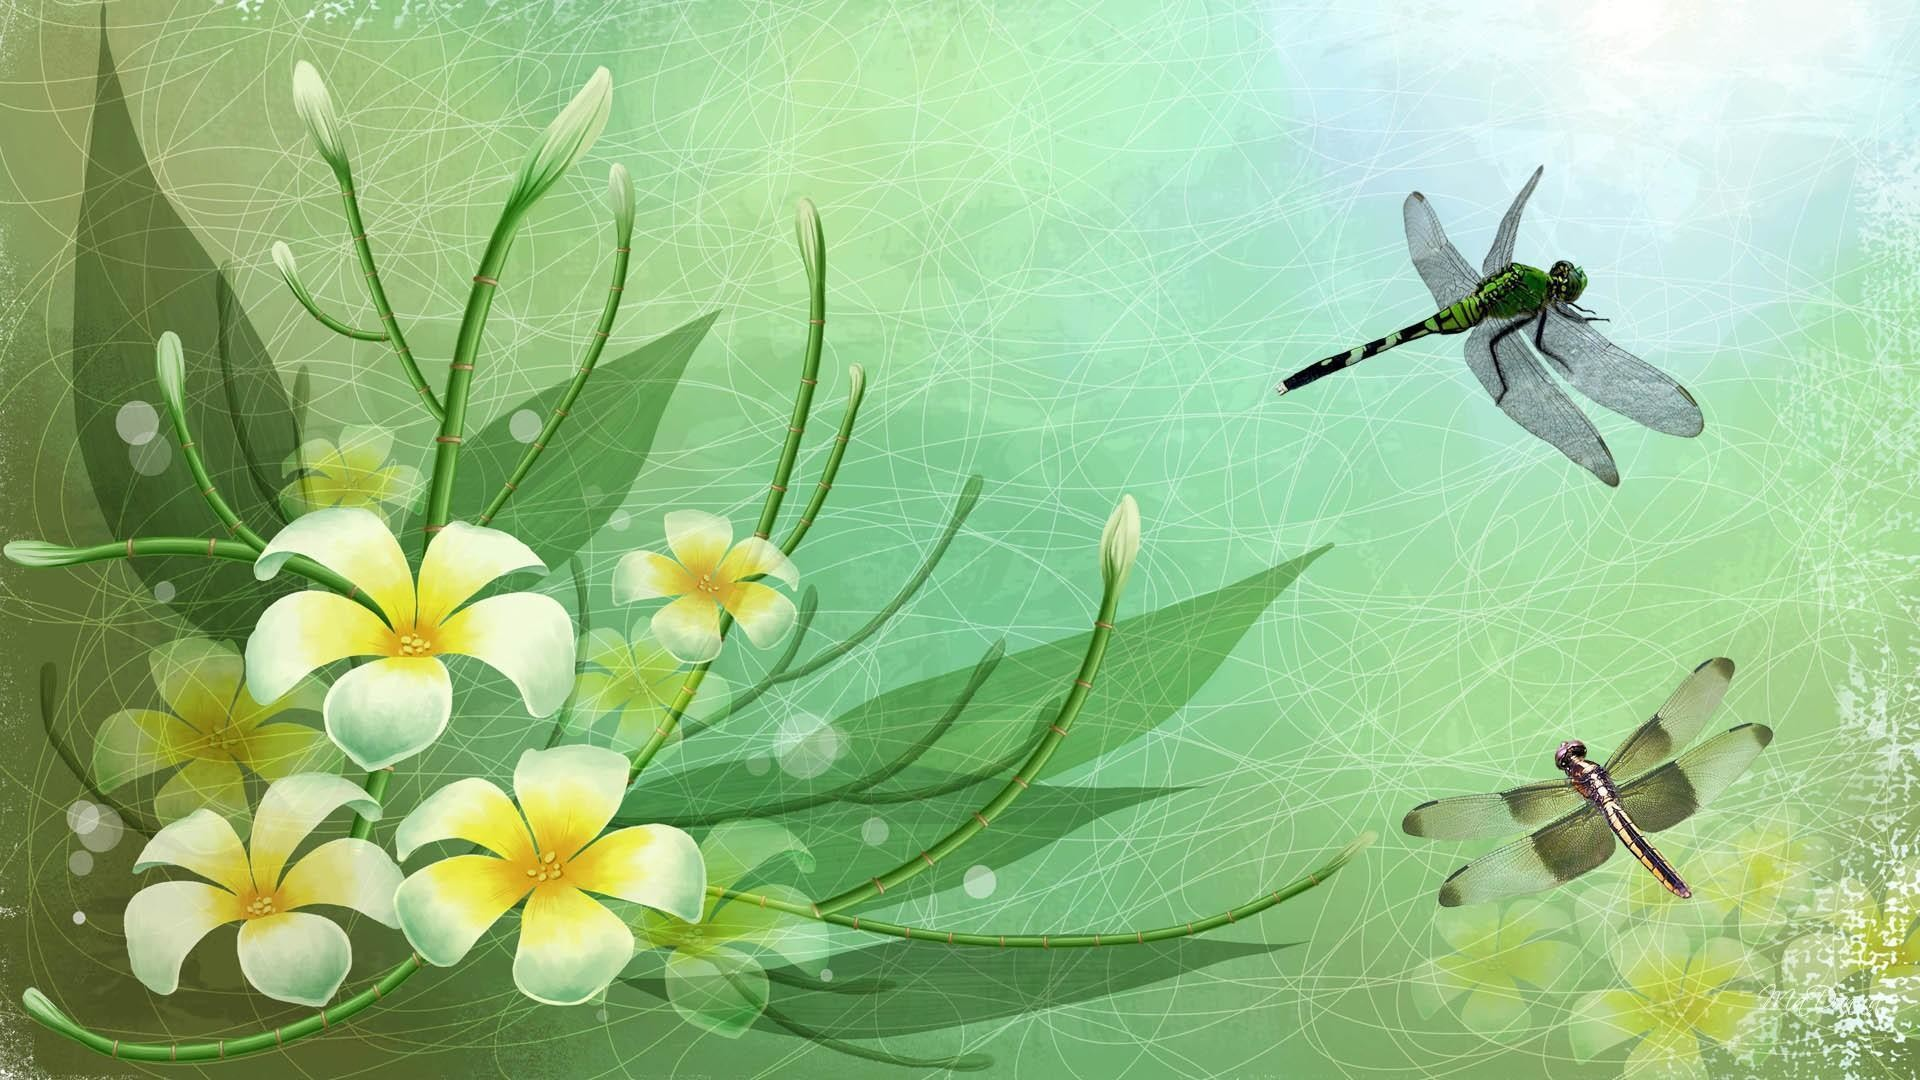 Res: 1920x1080, Dragonflies HD Desktop Wallpapers for Widescreen, High Definition .